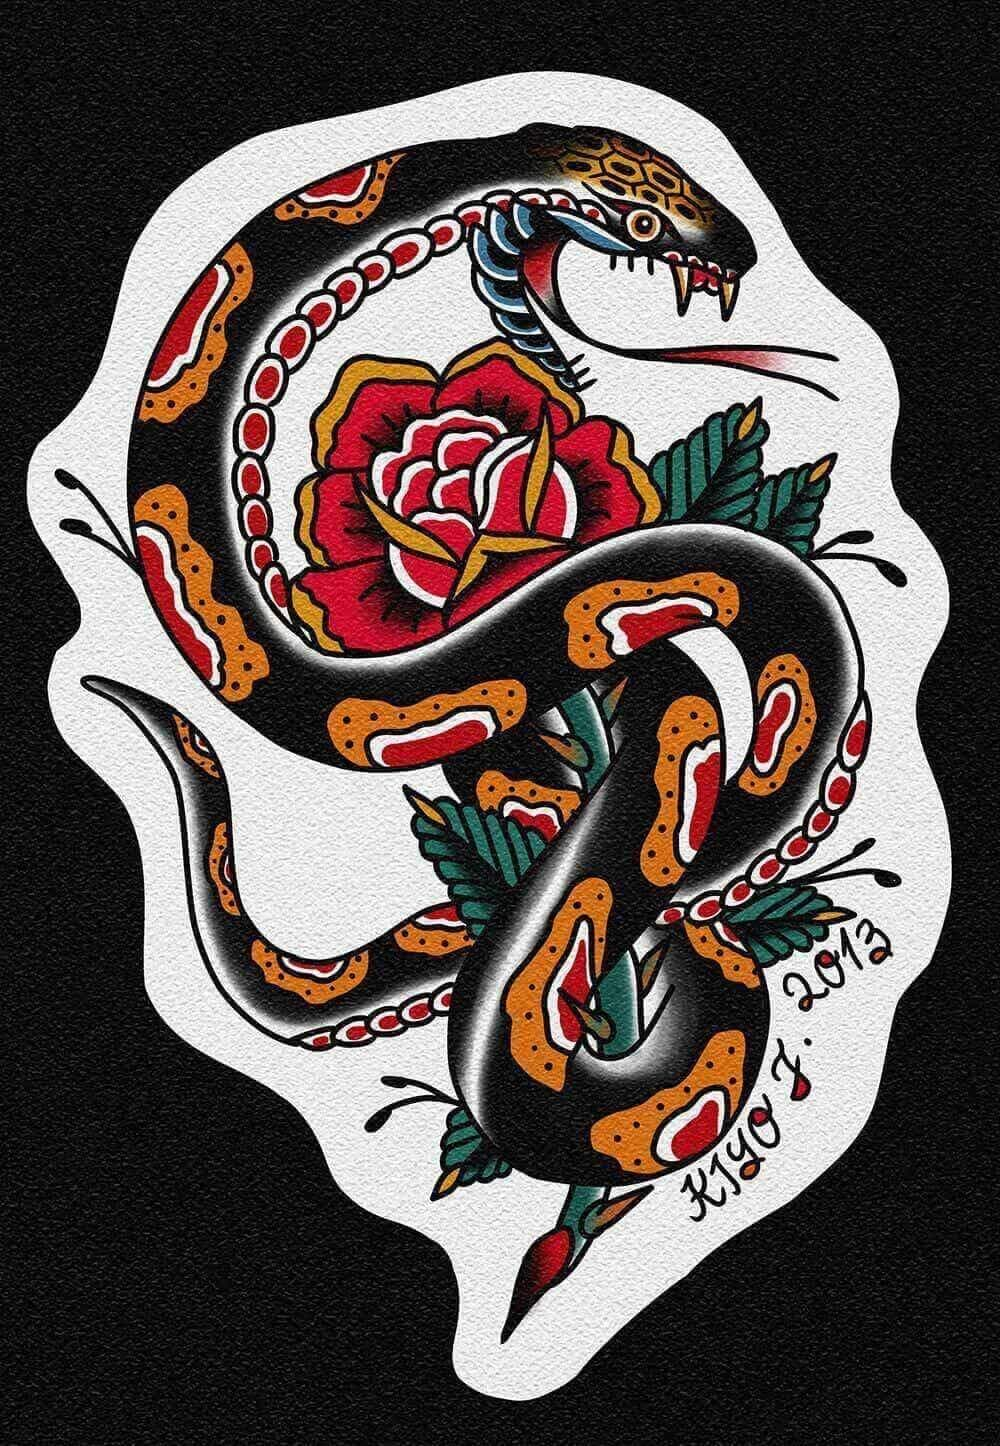 American Traditional Tattoos Their History And Meaning Tattoo Kits Tattoo Machines Tattoo Supplies丨wormhole Tattoo Supply Traditional Tattoo Old School Old School Tattoo Designs Traditional Snake Tattoo